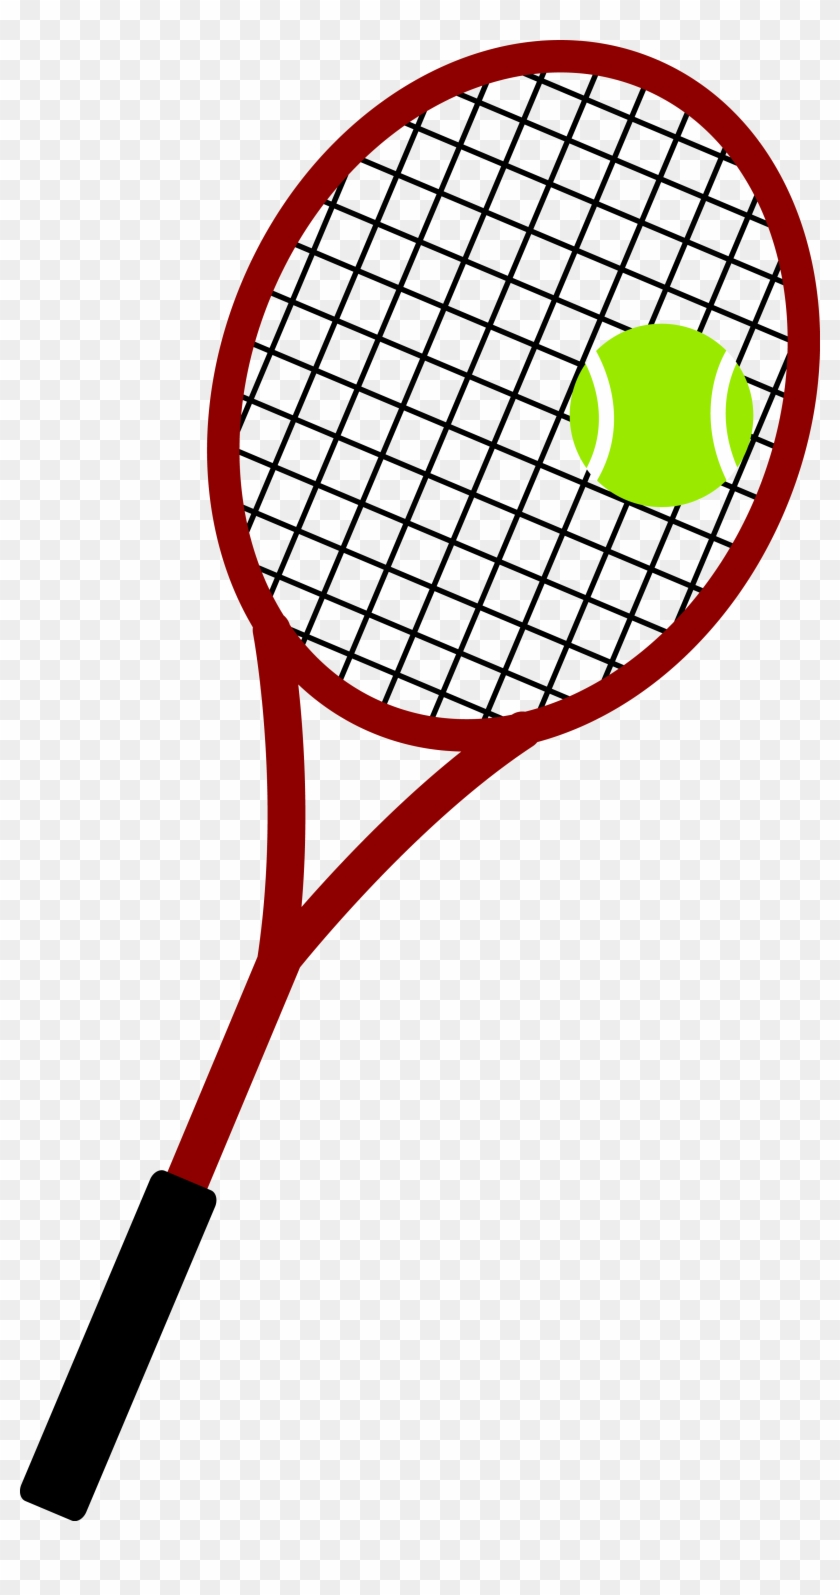 Tennis Ball And Racket Png Image.